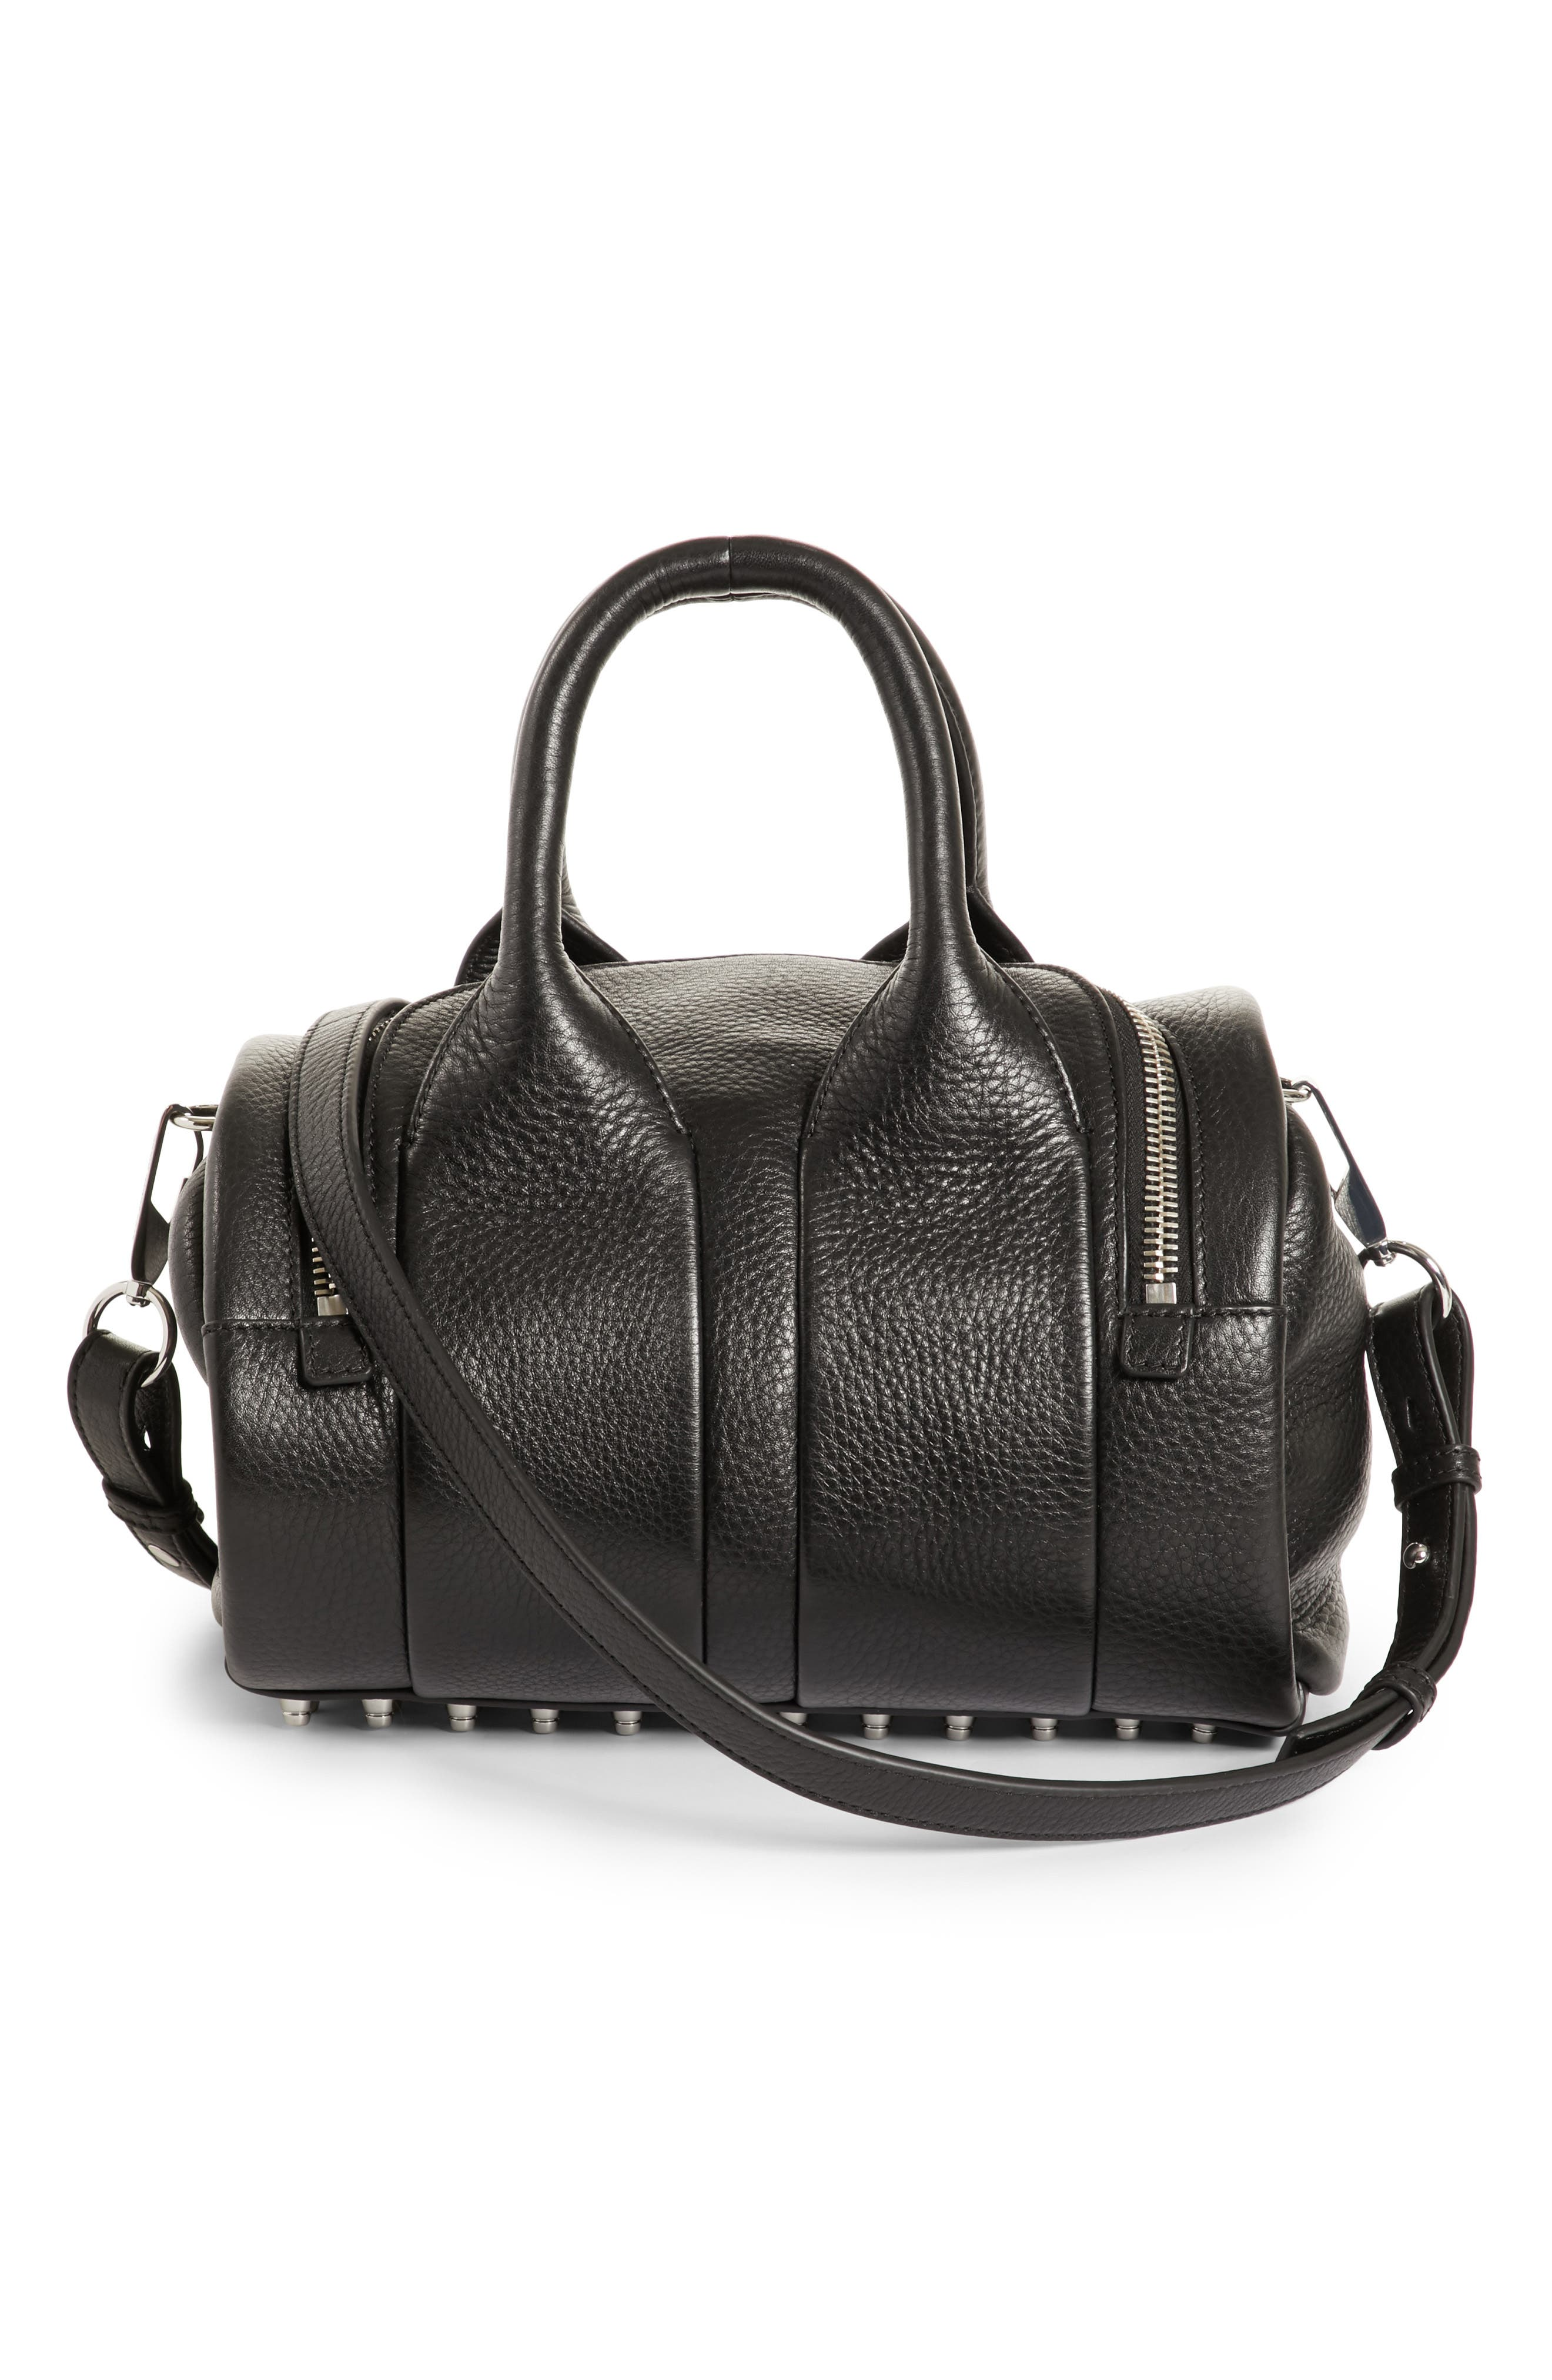 Rockie - Nickel Leather Satchel,                             Alternate thumbnail 3, color,                             001